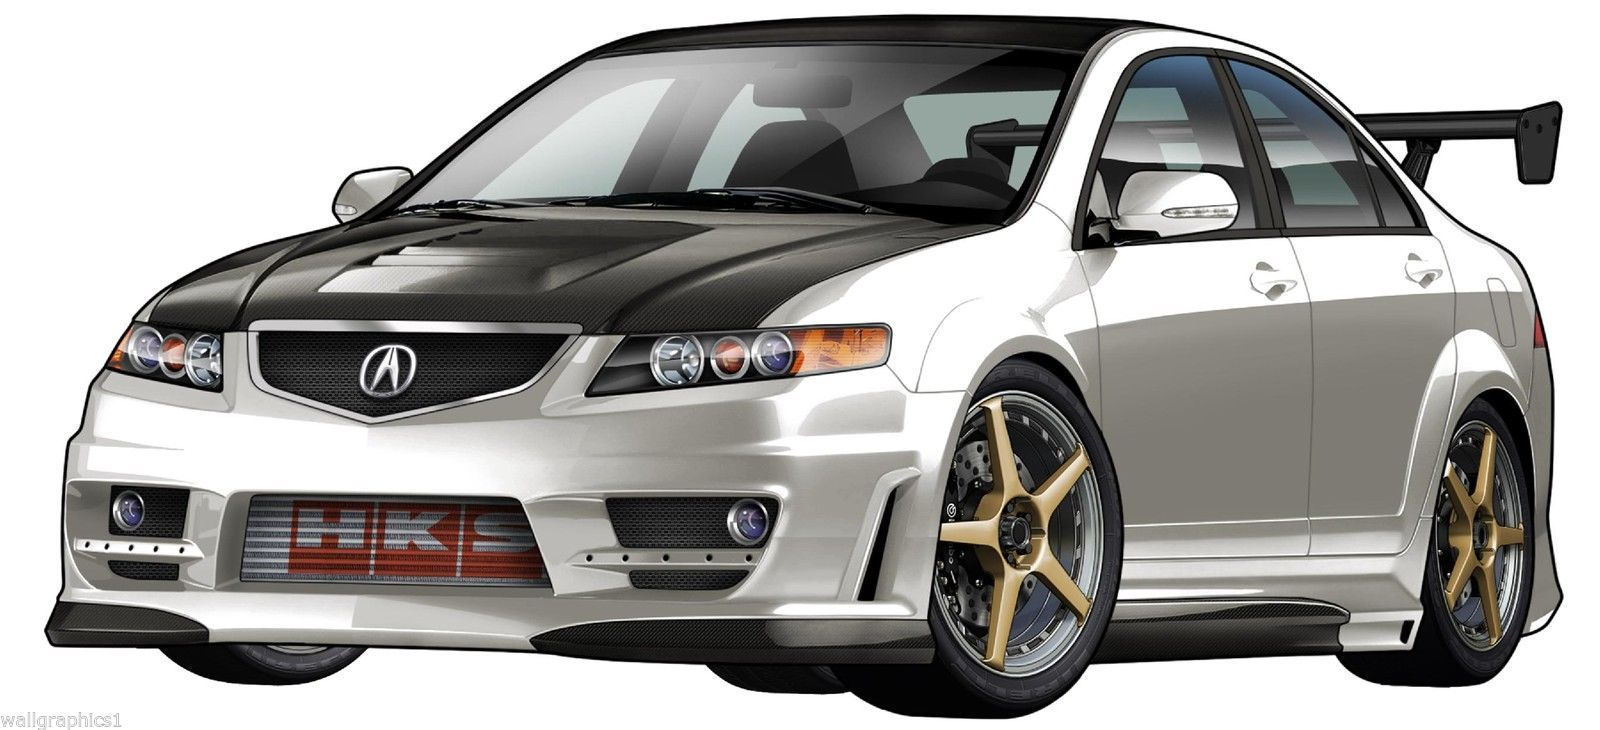 Acura Decal Listings - Acura decals